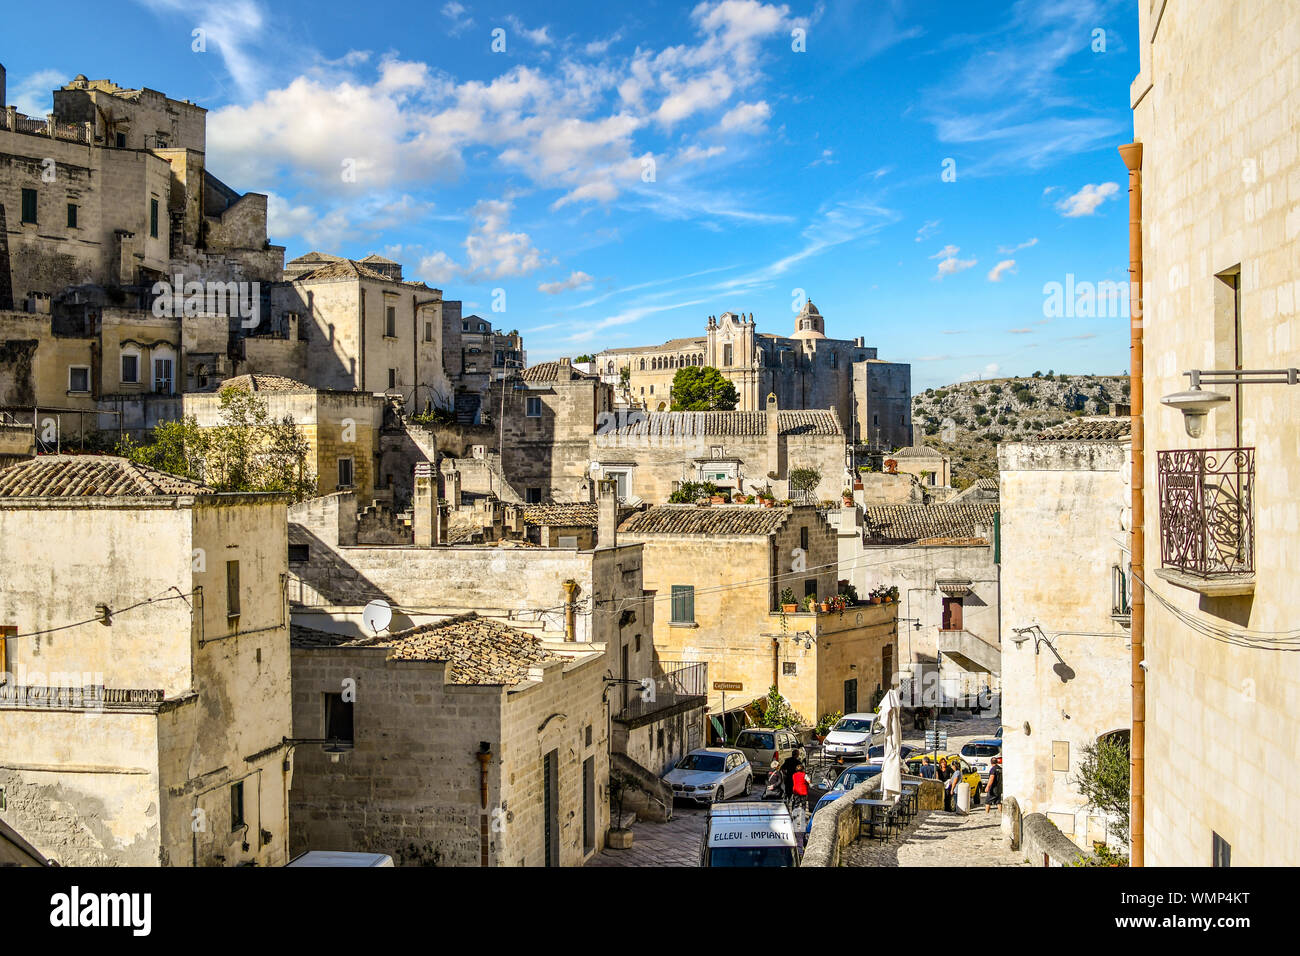 Typical street running through the ancient sassi town of Matera, Italy, with the Convent of Saint Agostino in the distance. Stock Photo